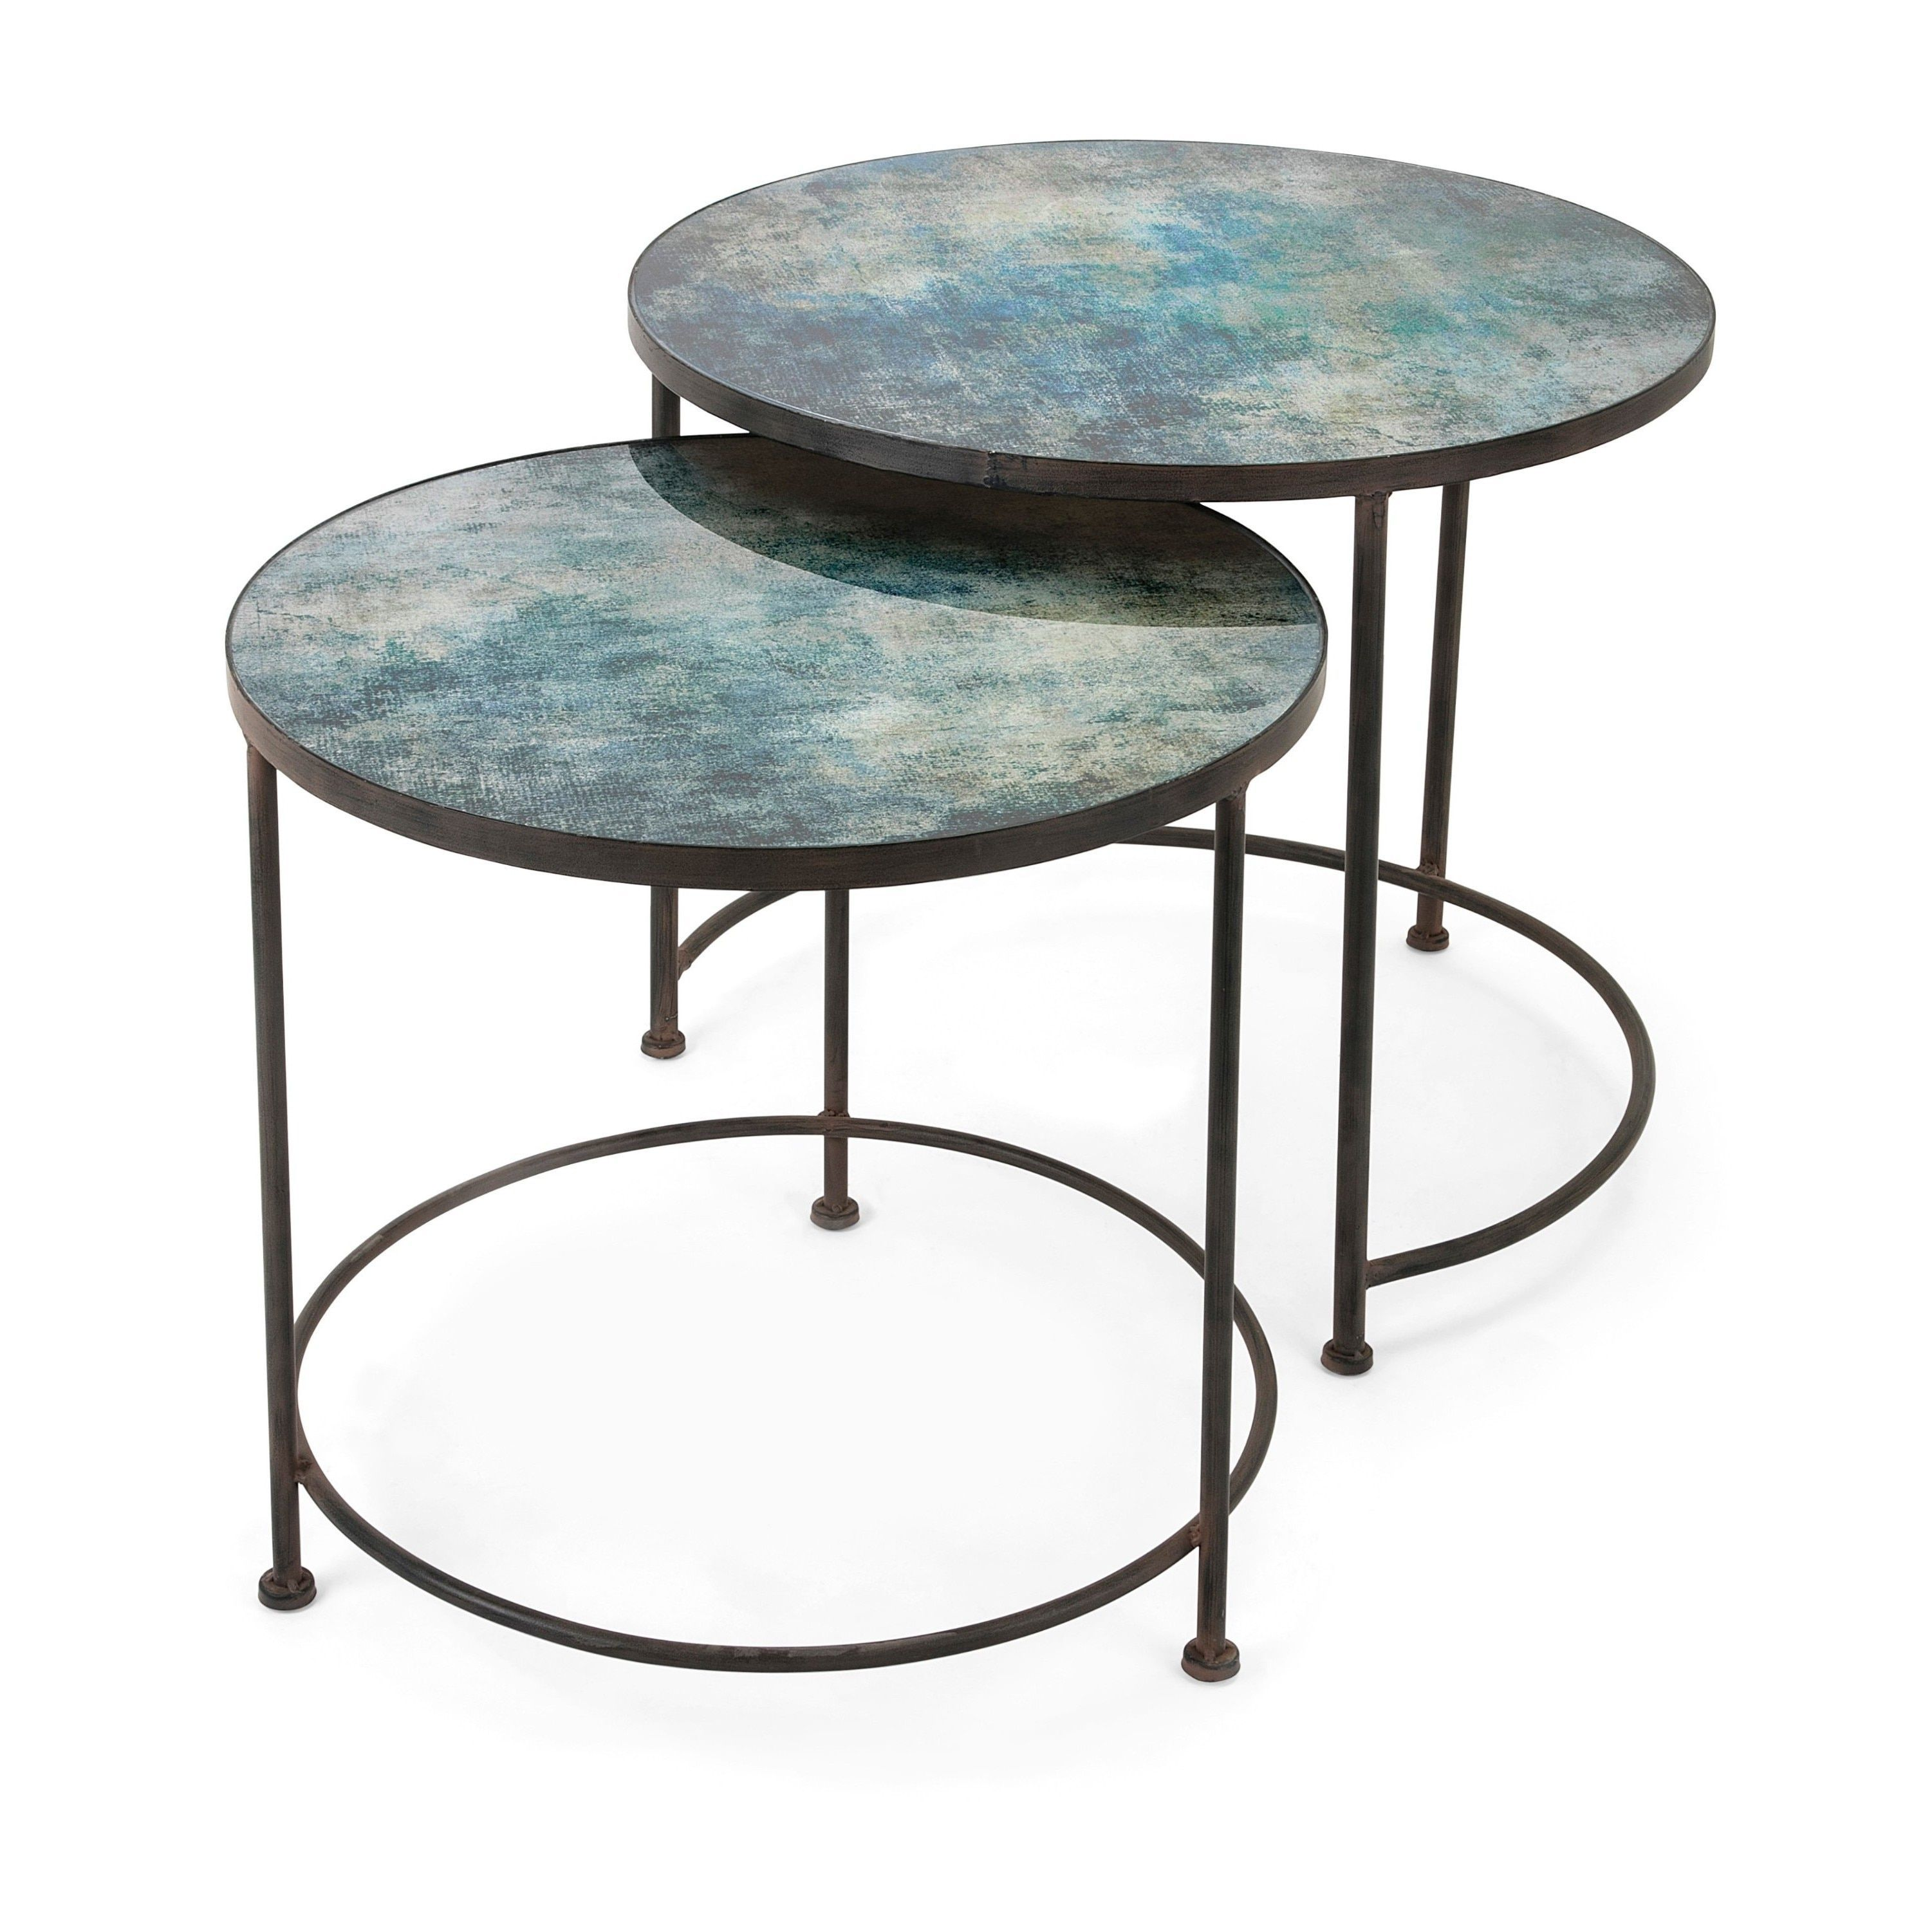 Paxton Metal And Printed Glass Accent Tables Set Of 2 Assembled 3 And 4 Legs Black N A Coffee Table Marble Coffee Table Set Marble Round Coffee Table [ 3002 x 3002 Pixel ]